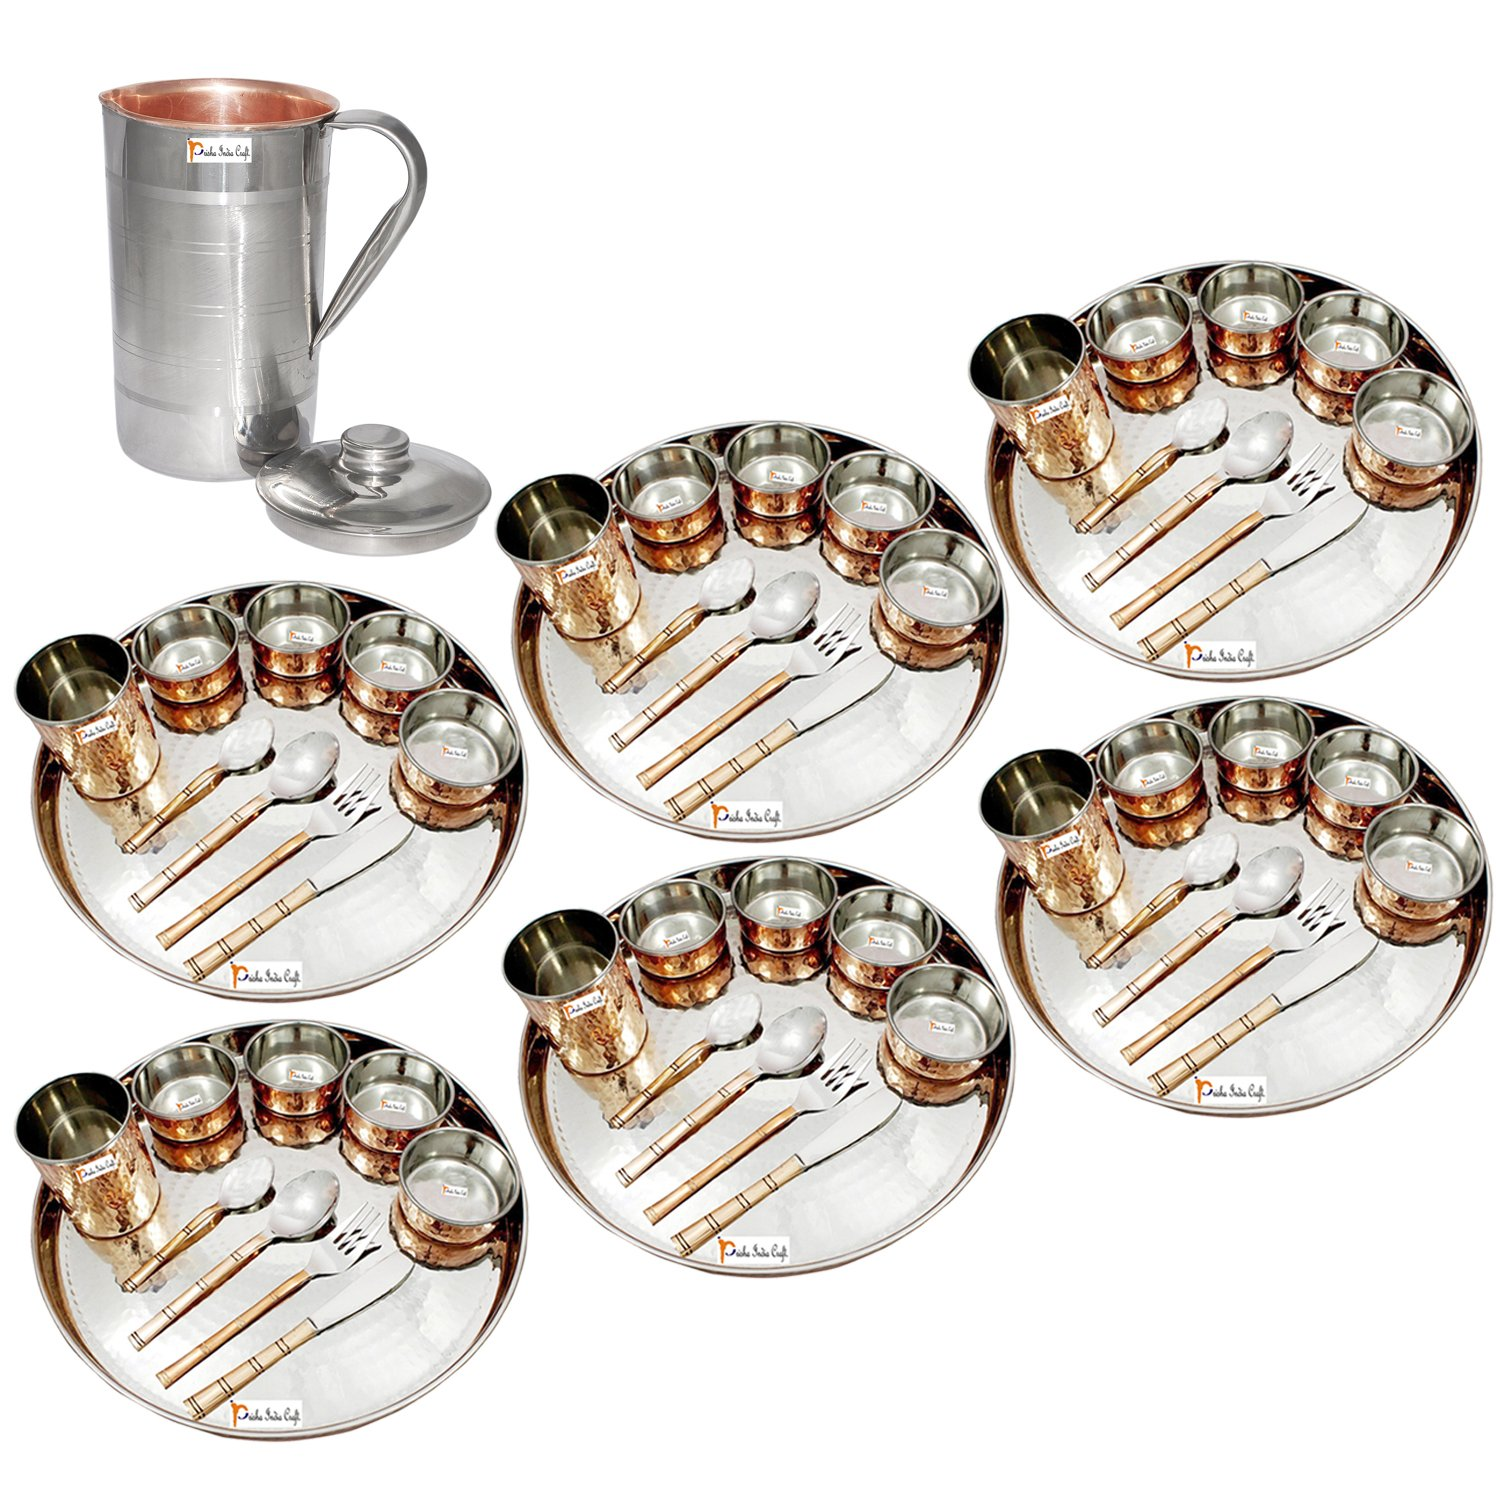 Prisha India Craft ® Set of 6 Dinnerware Traditional Stainless Steel Copper Dinner Set of Thali Plate, Bowls, Glass and Spoons, Dia 13'' With 1 Luxury Style Pitcher Jug - Christmas Gift